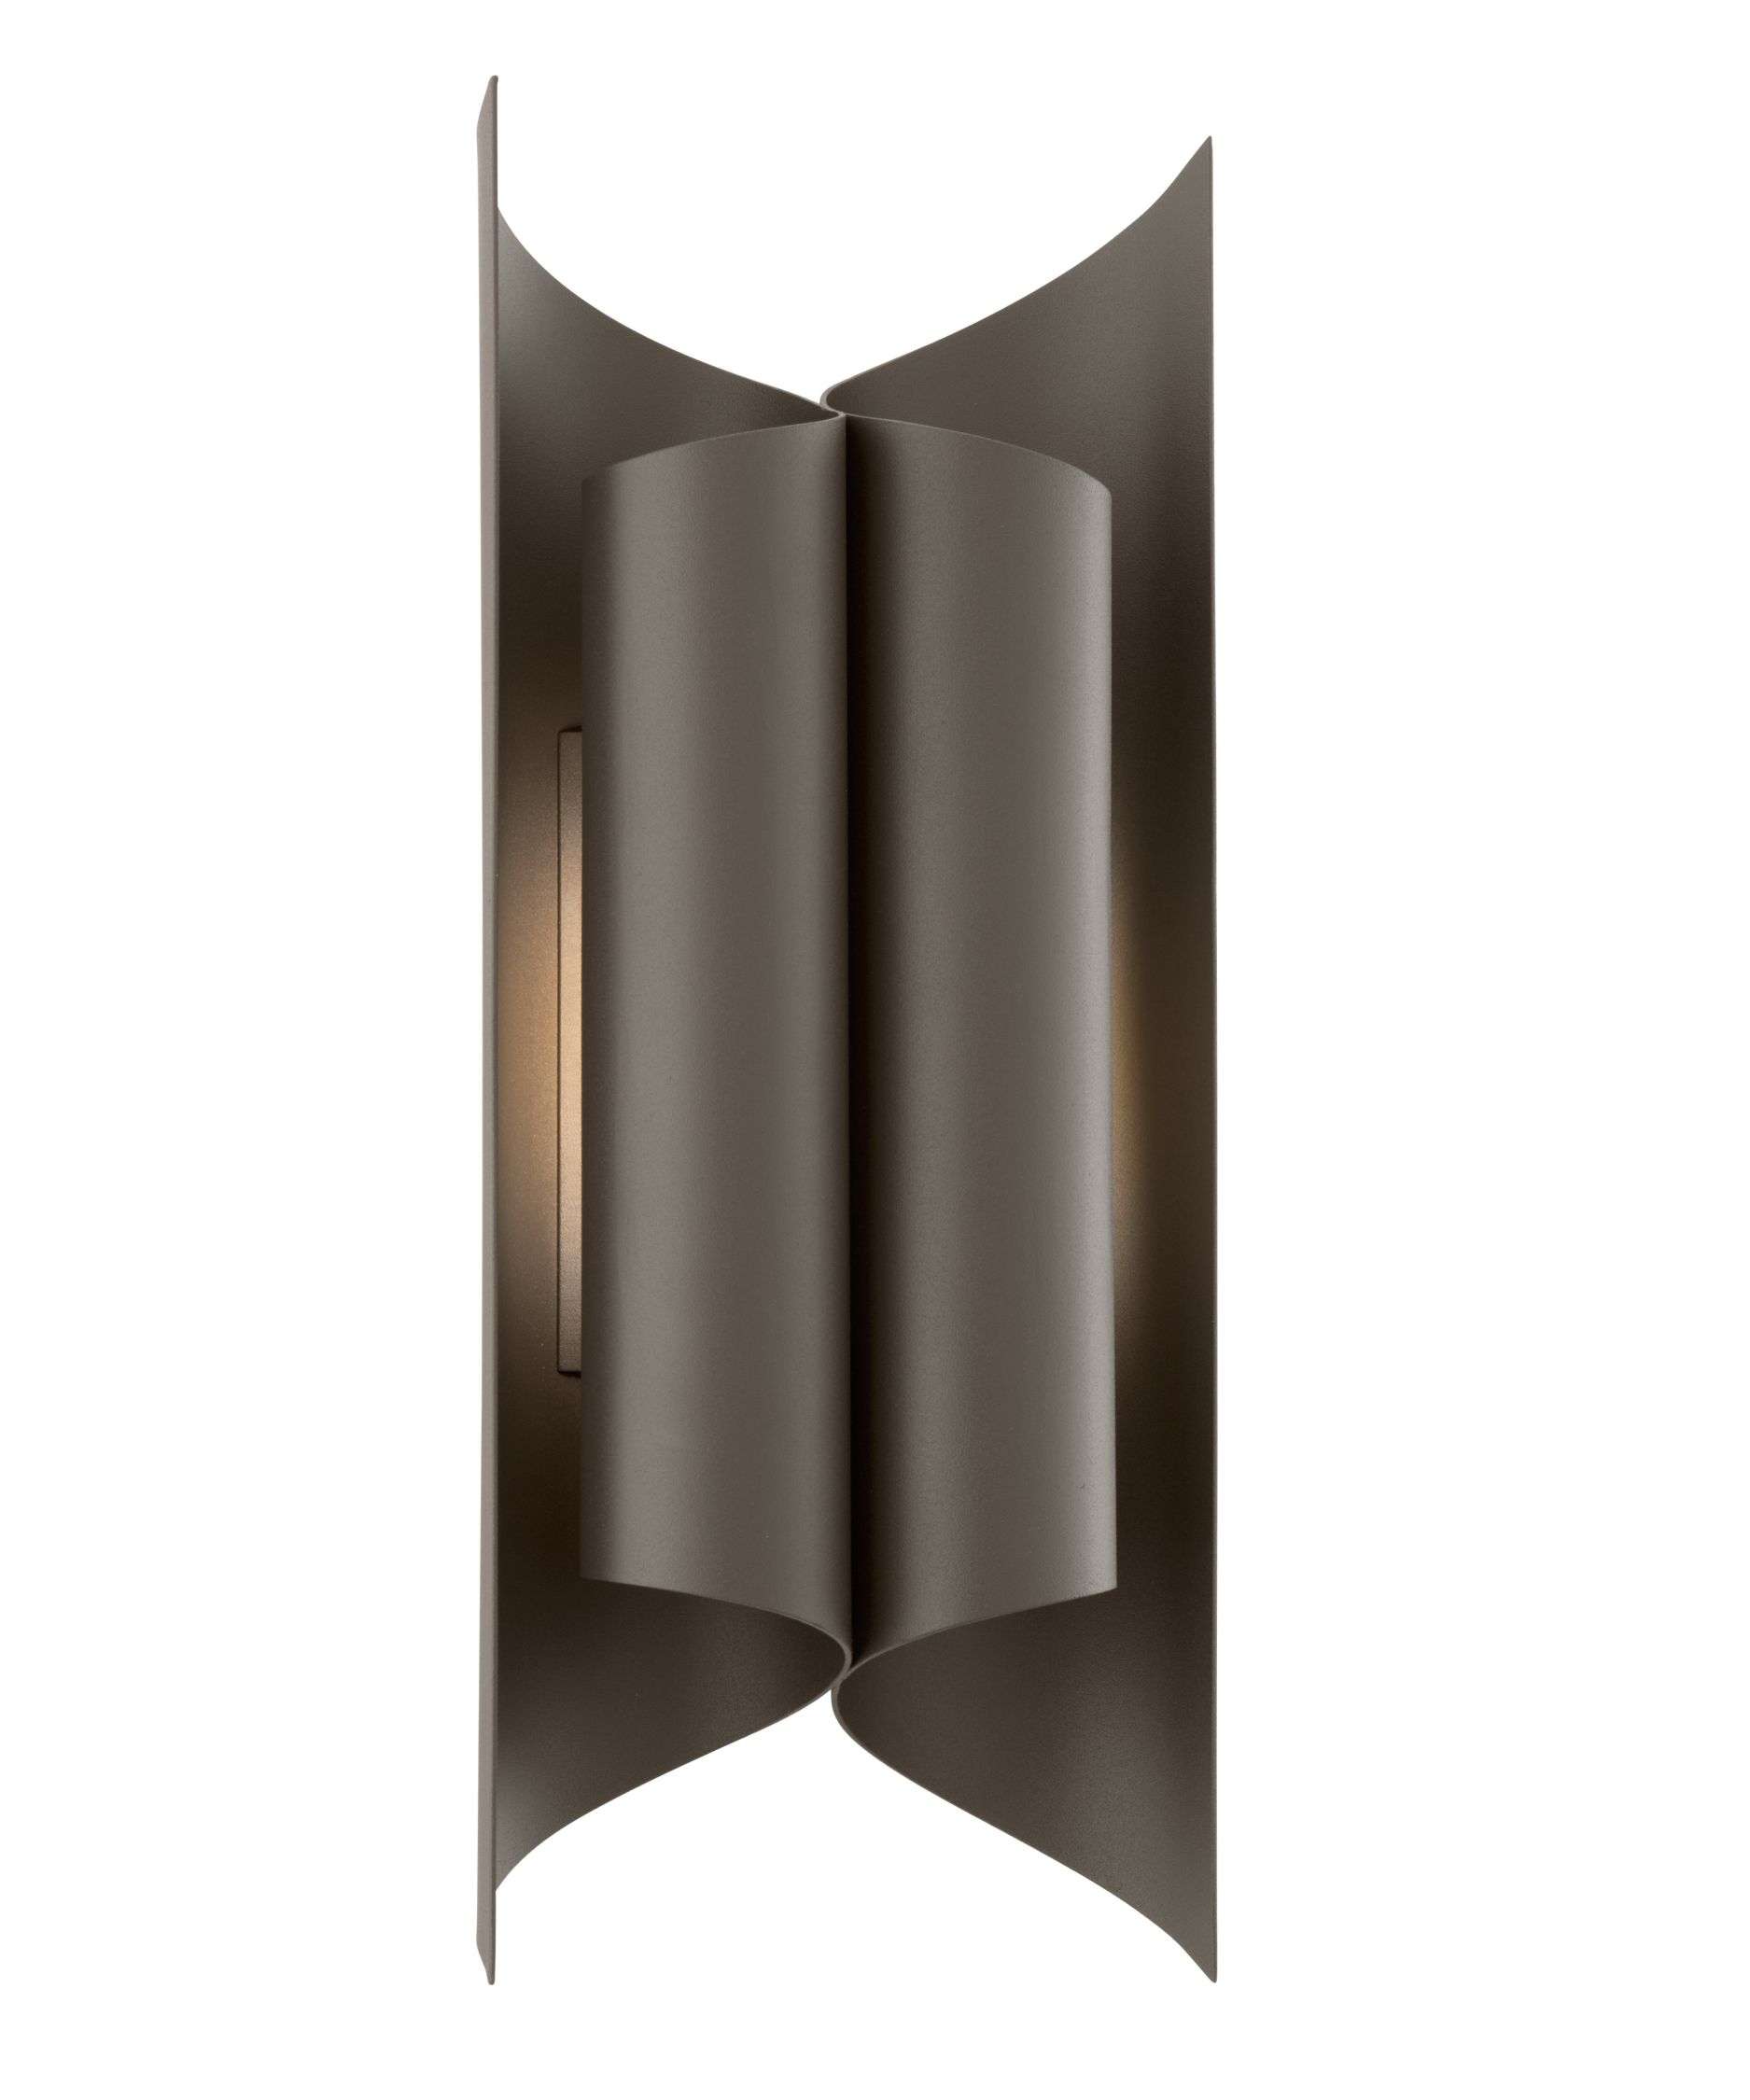 Troy Lighting BL3383 Kinetic Energy Smart 16 Light Outdoor Wall Light | TroyLightingShop.com